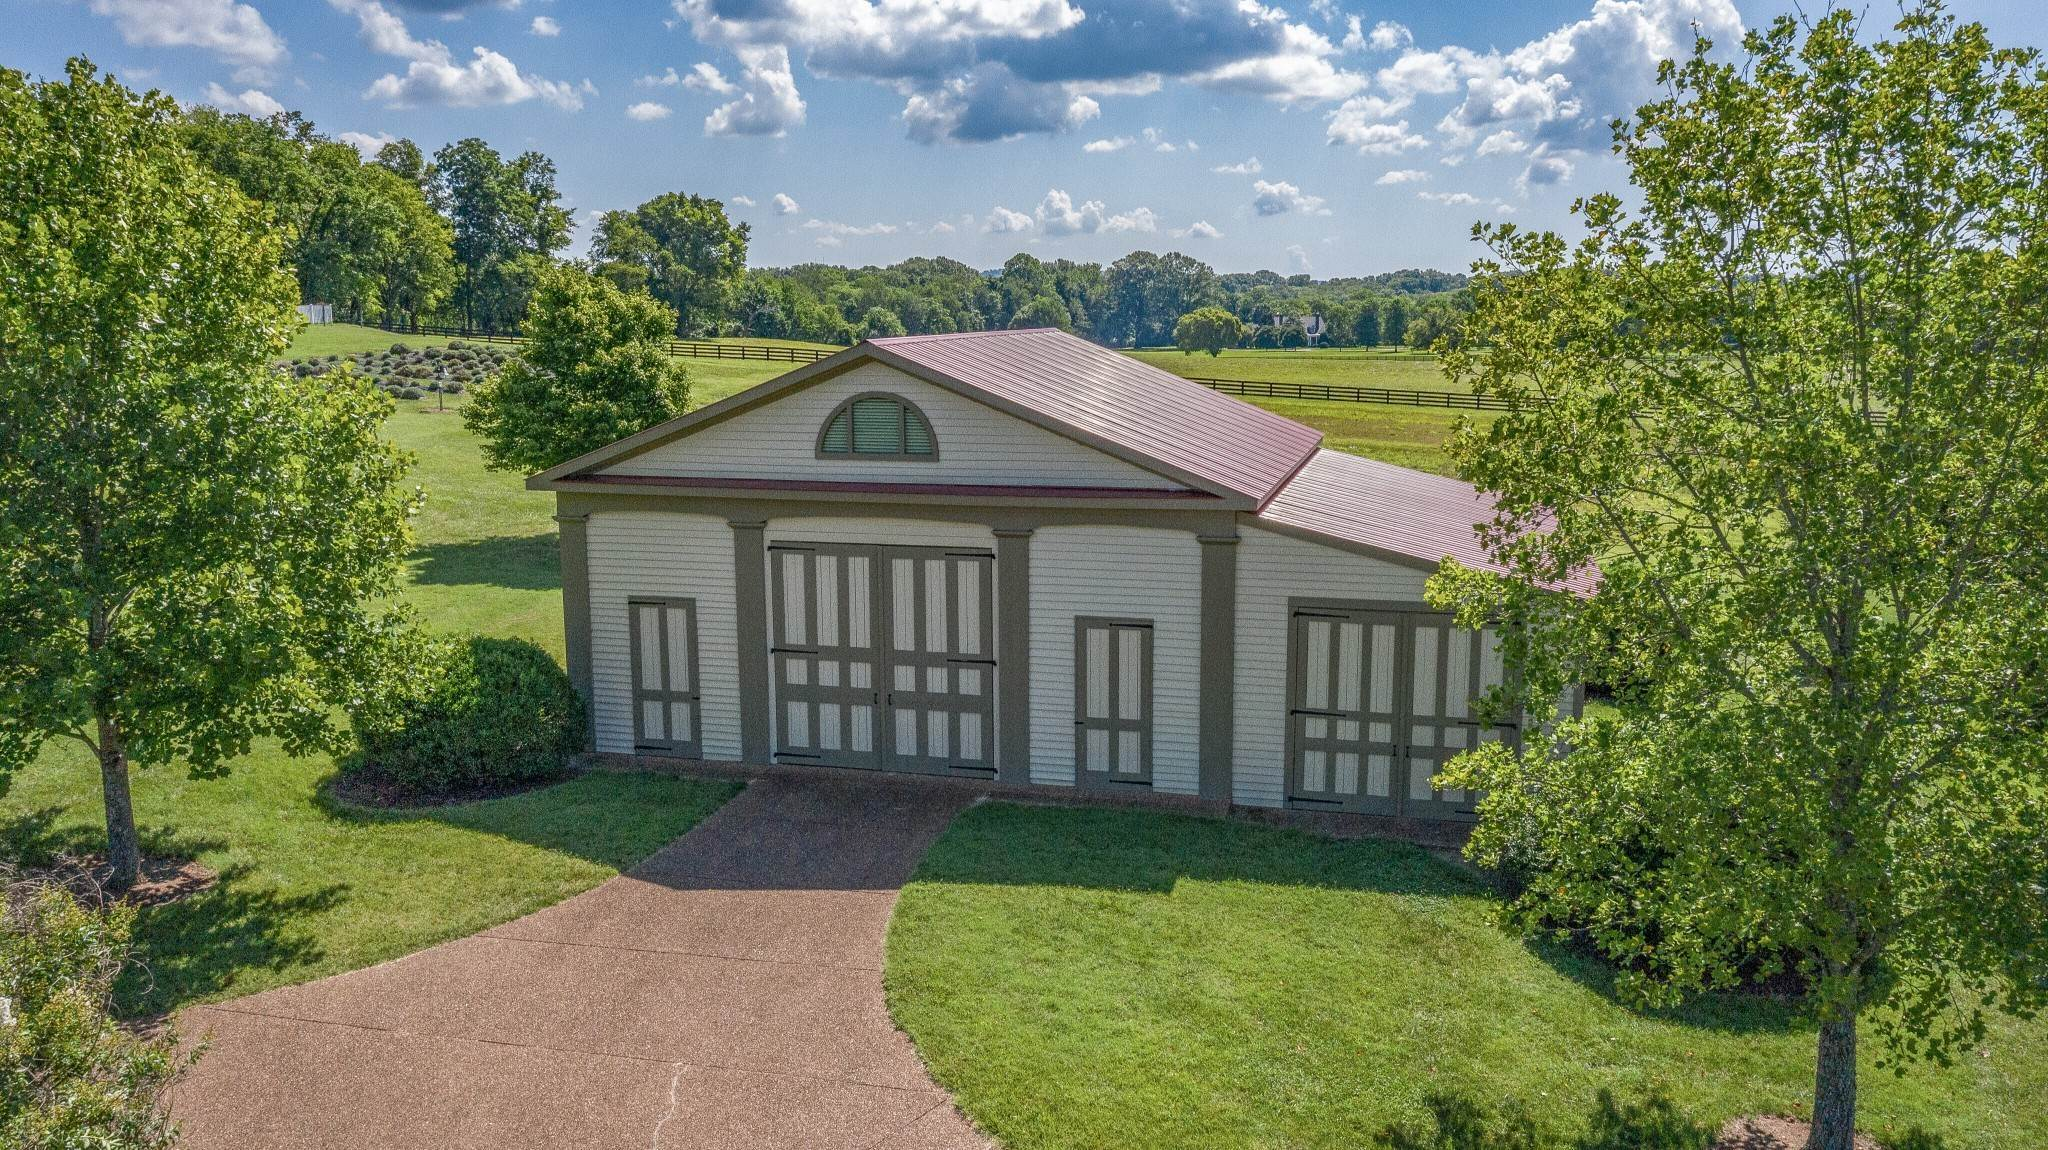 46. Single Family Homes for Sale at 1711 Old Hillsboro Road Franklin, Tennessee 37069 United States